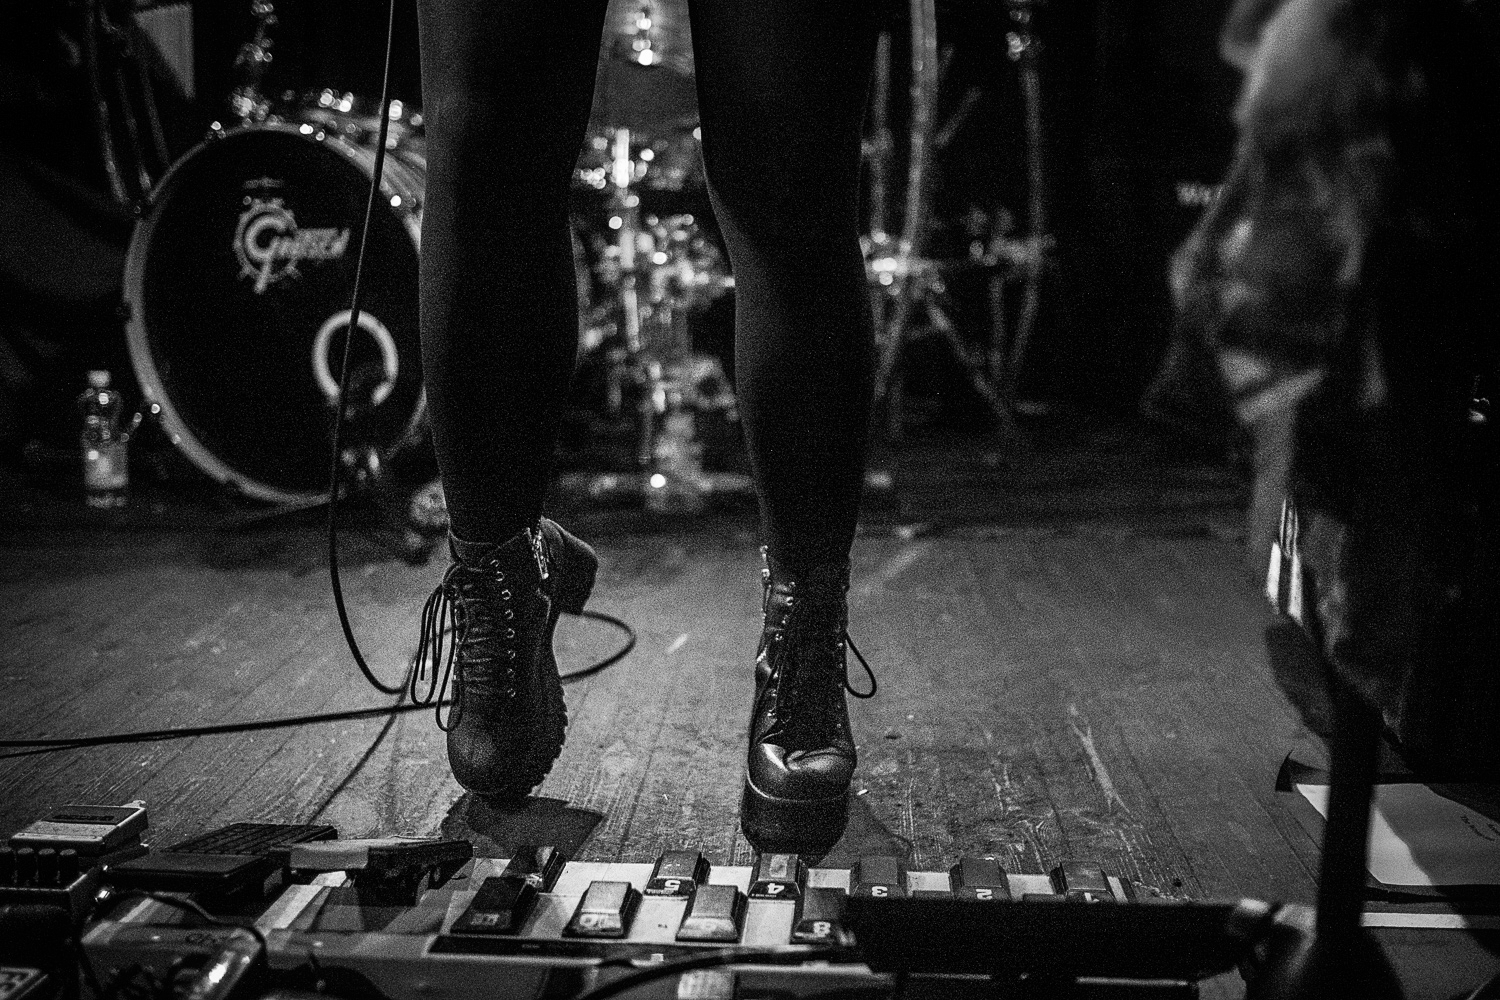 20180820-024-The-Joy-Formidable-@-Blue-Shell-Köln-Cred_Michael_Lamertz_@indie.and_.more_.jpg